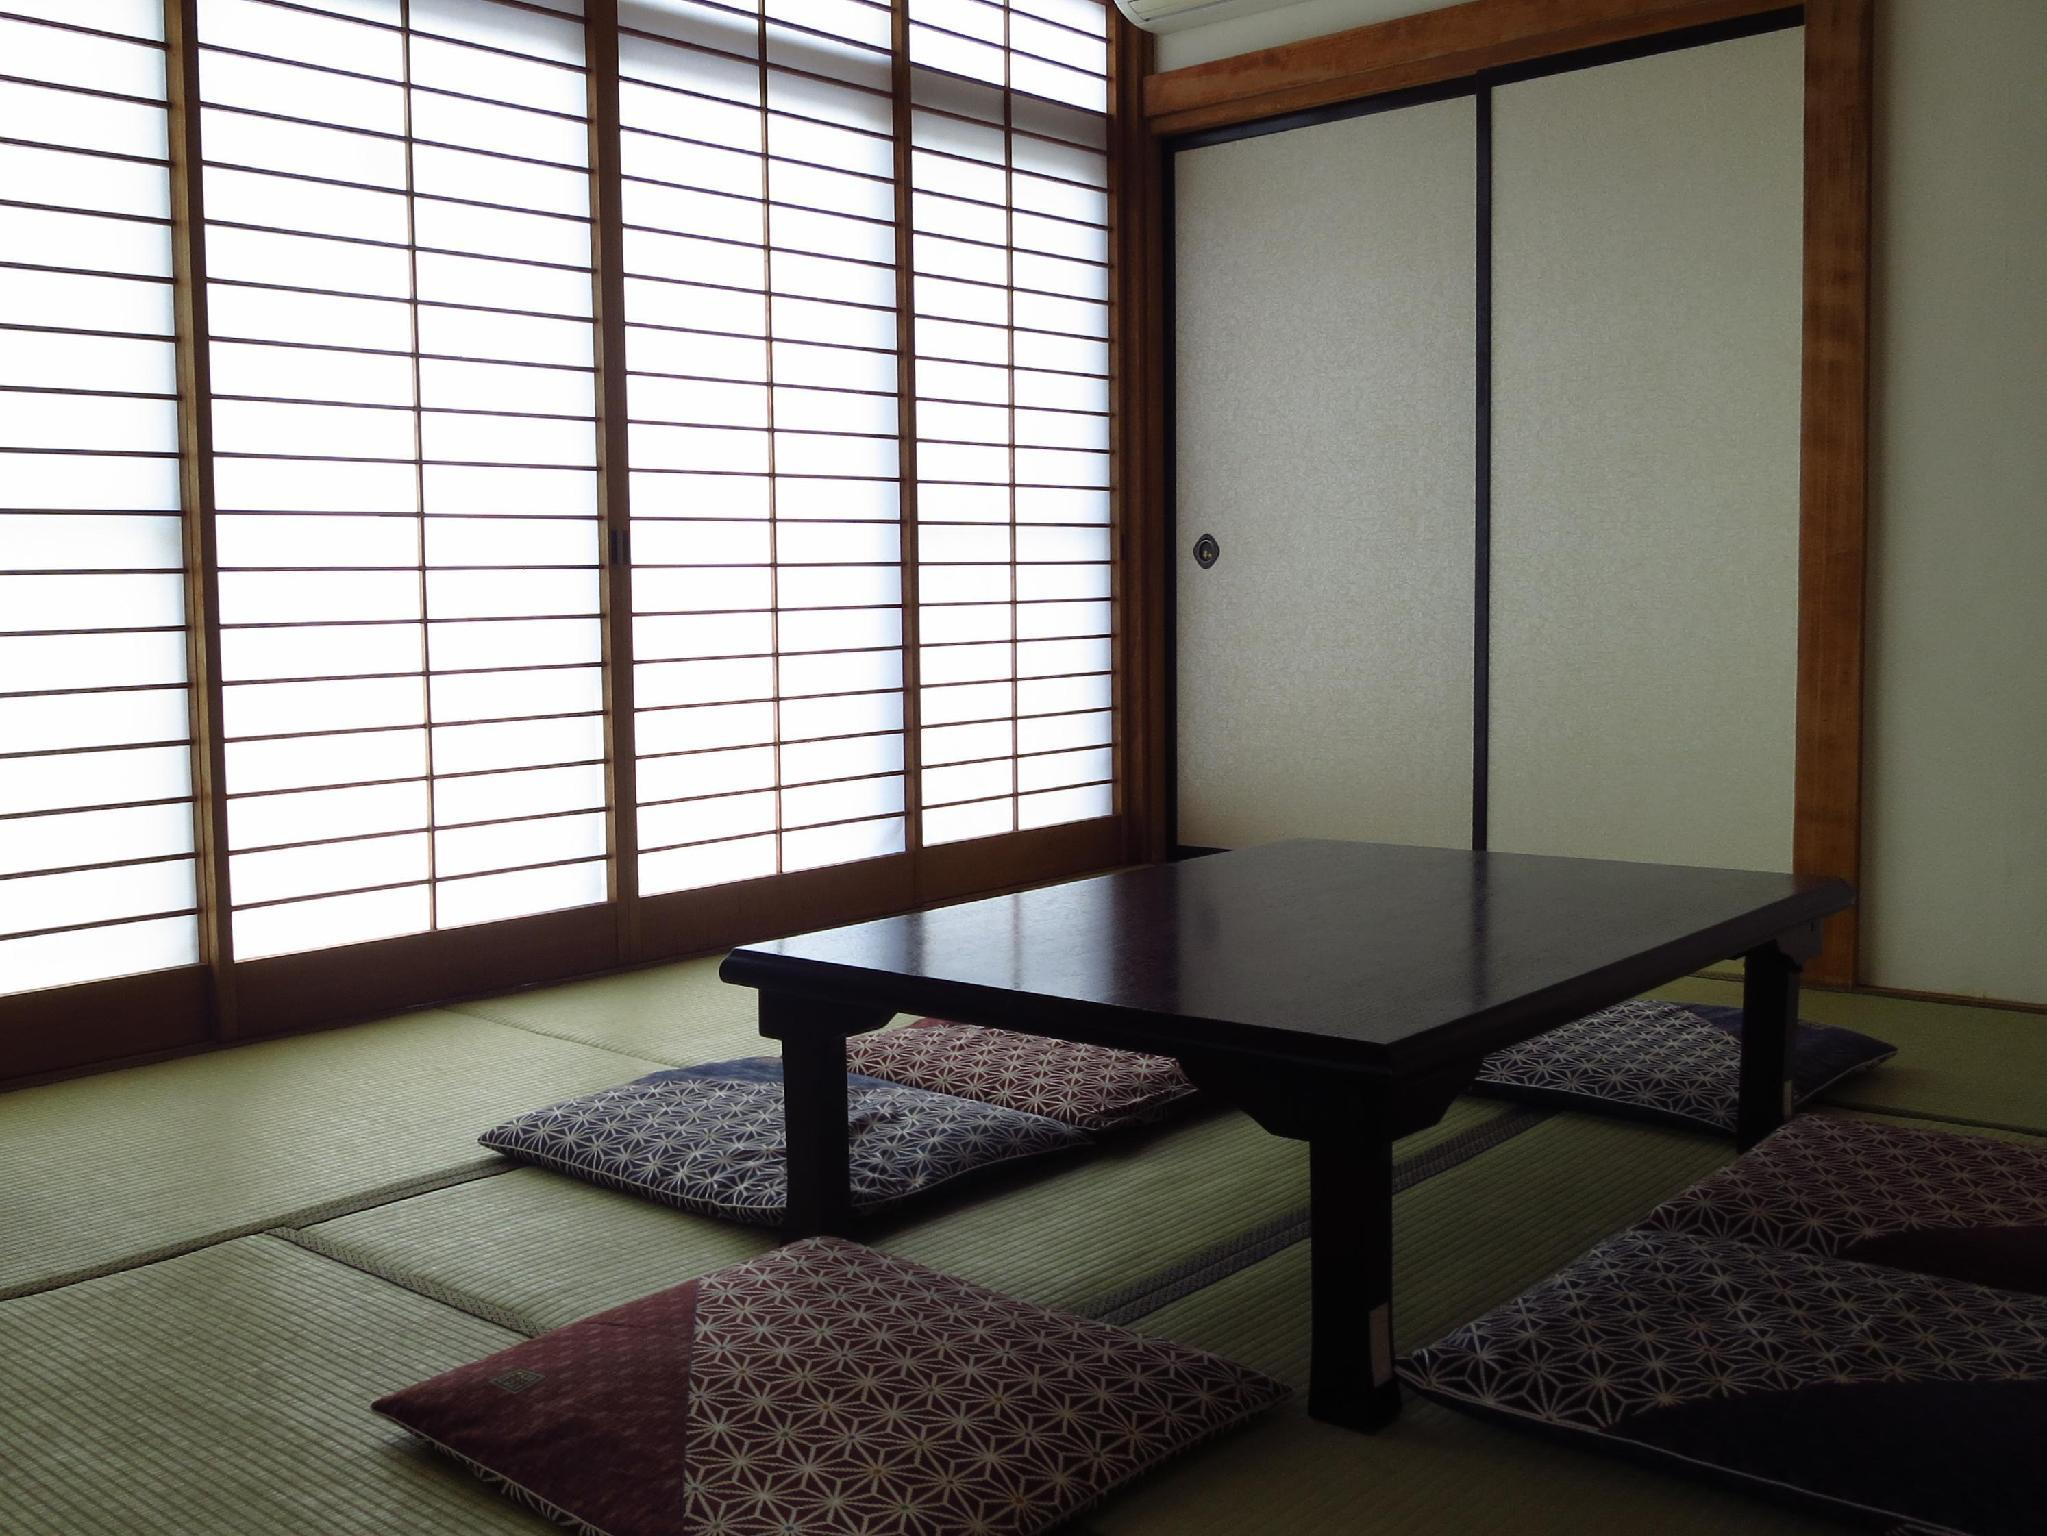 Japanese Room with Bathroom (Small)